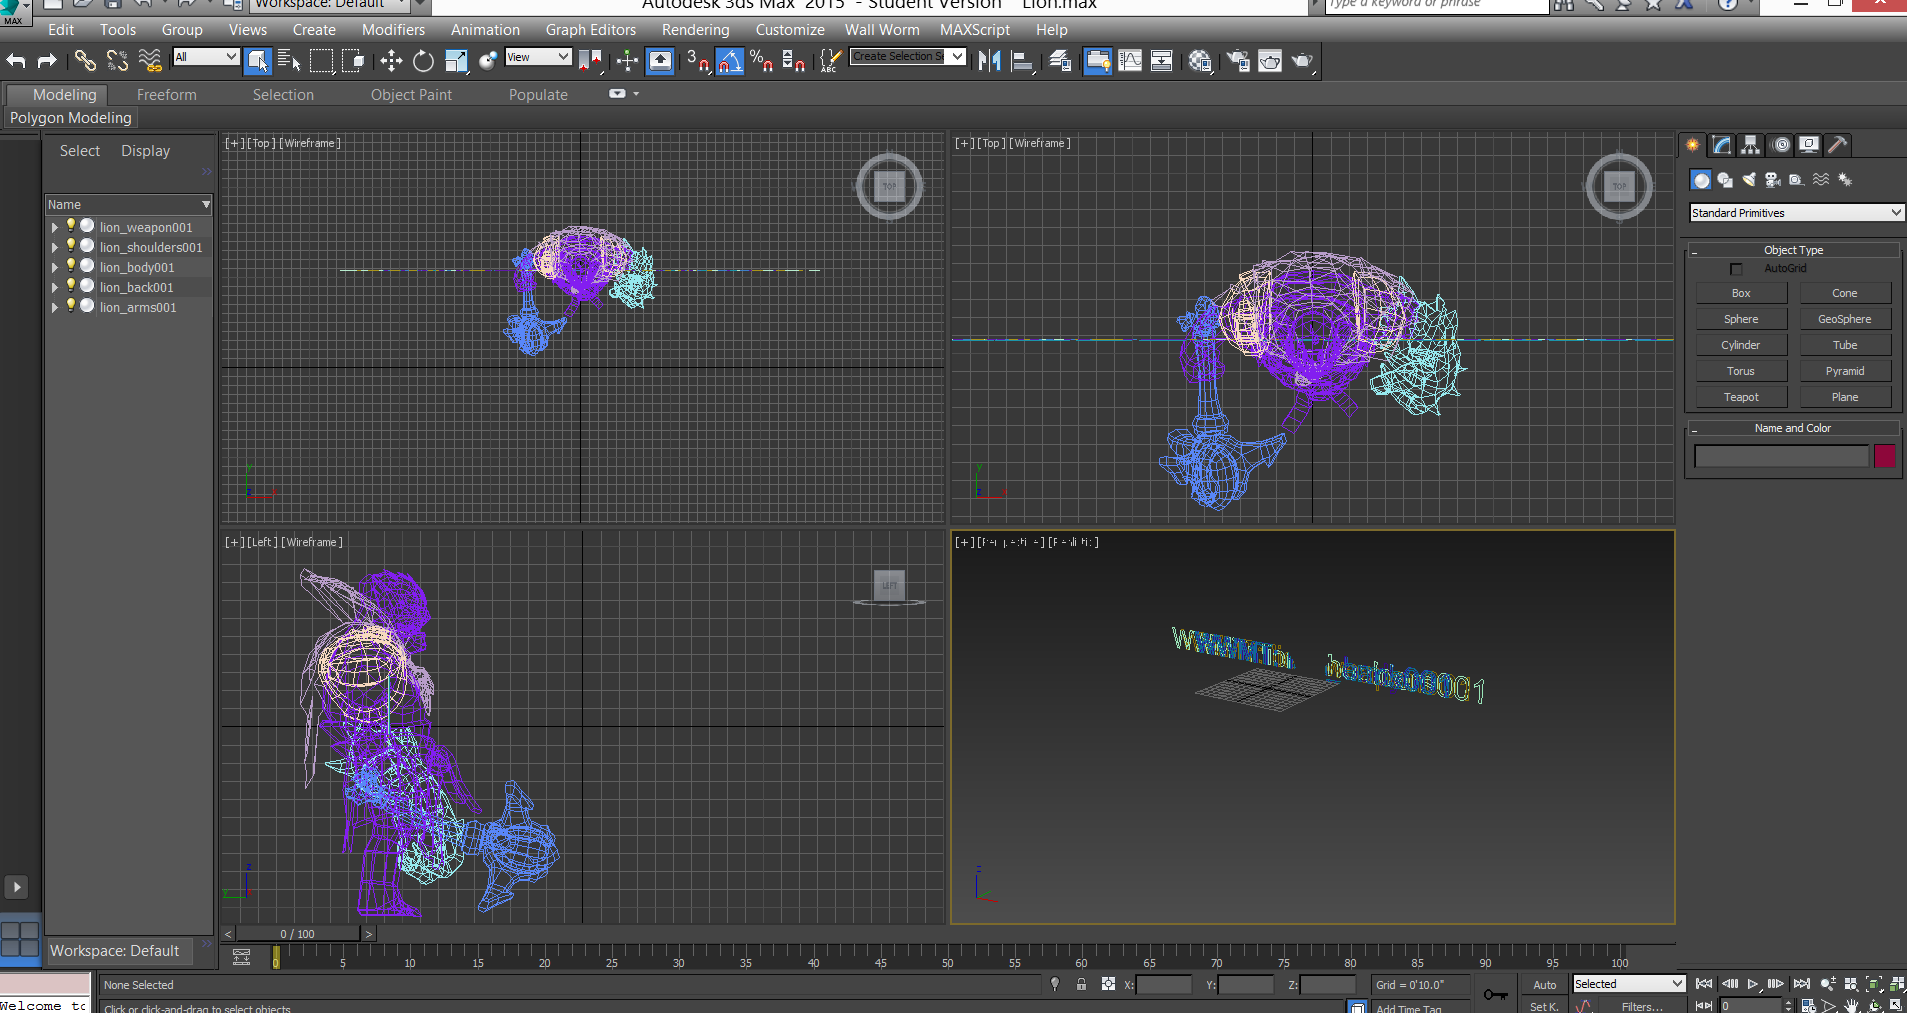 3DS Max 2015 doesn't display material properly - Autodesk Community